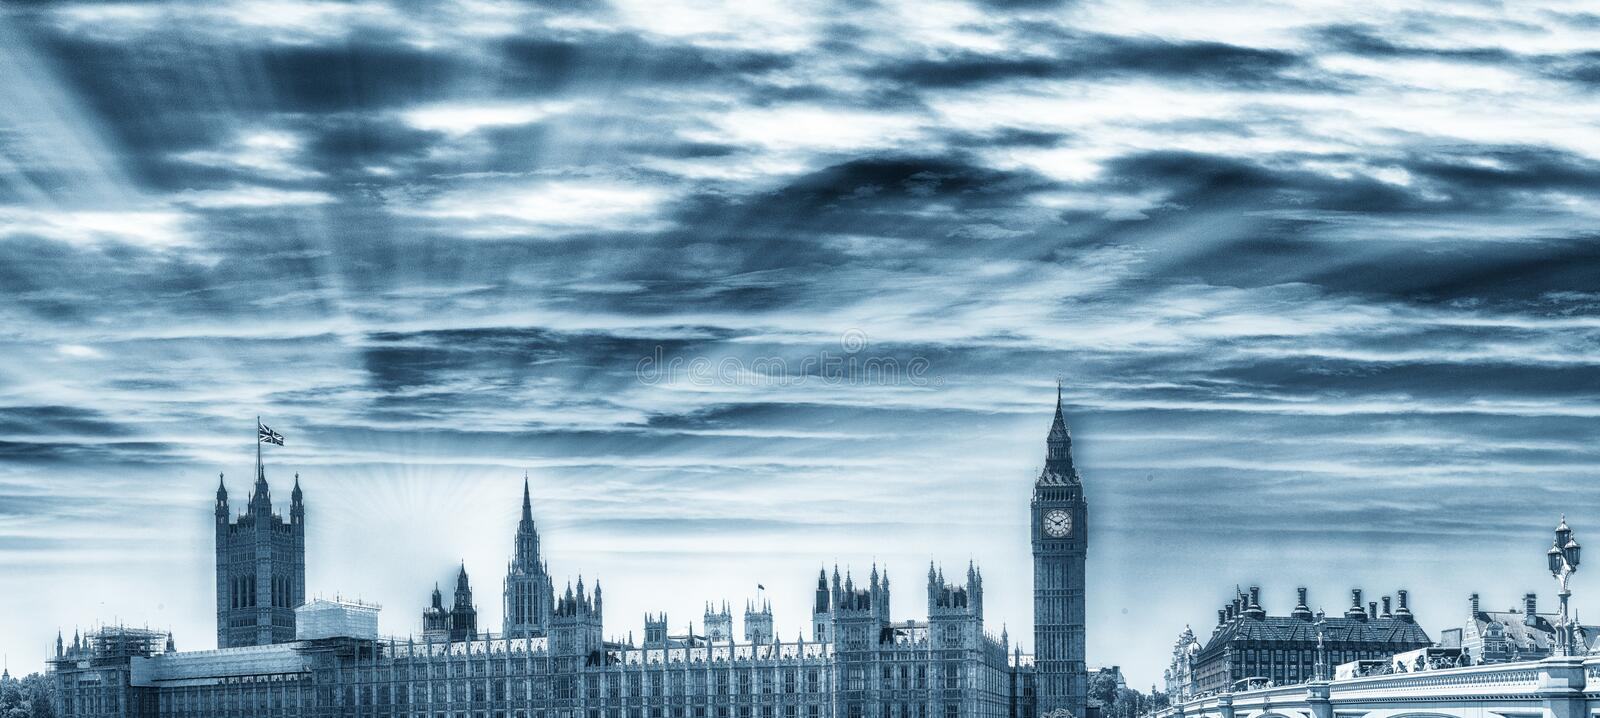 Panoramic view of Westminster Palace, Houses of Parliament - Lon royalty free stock photography